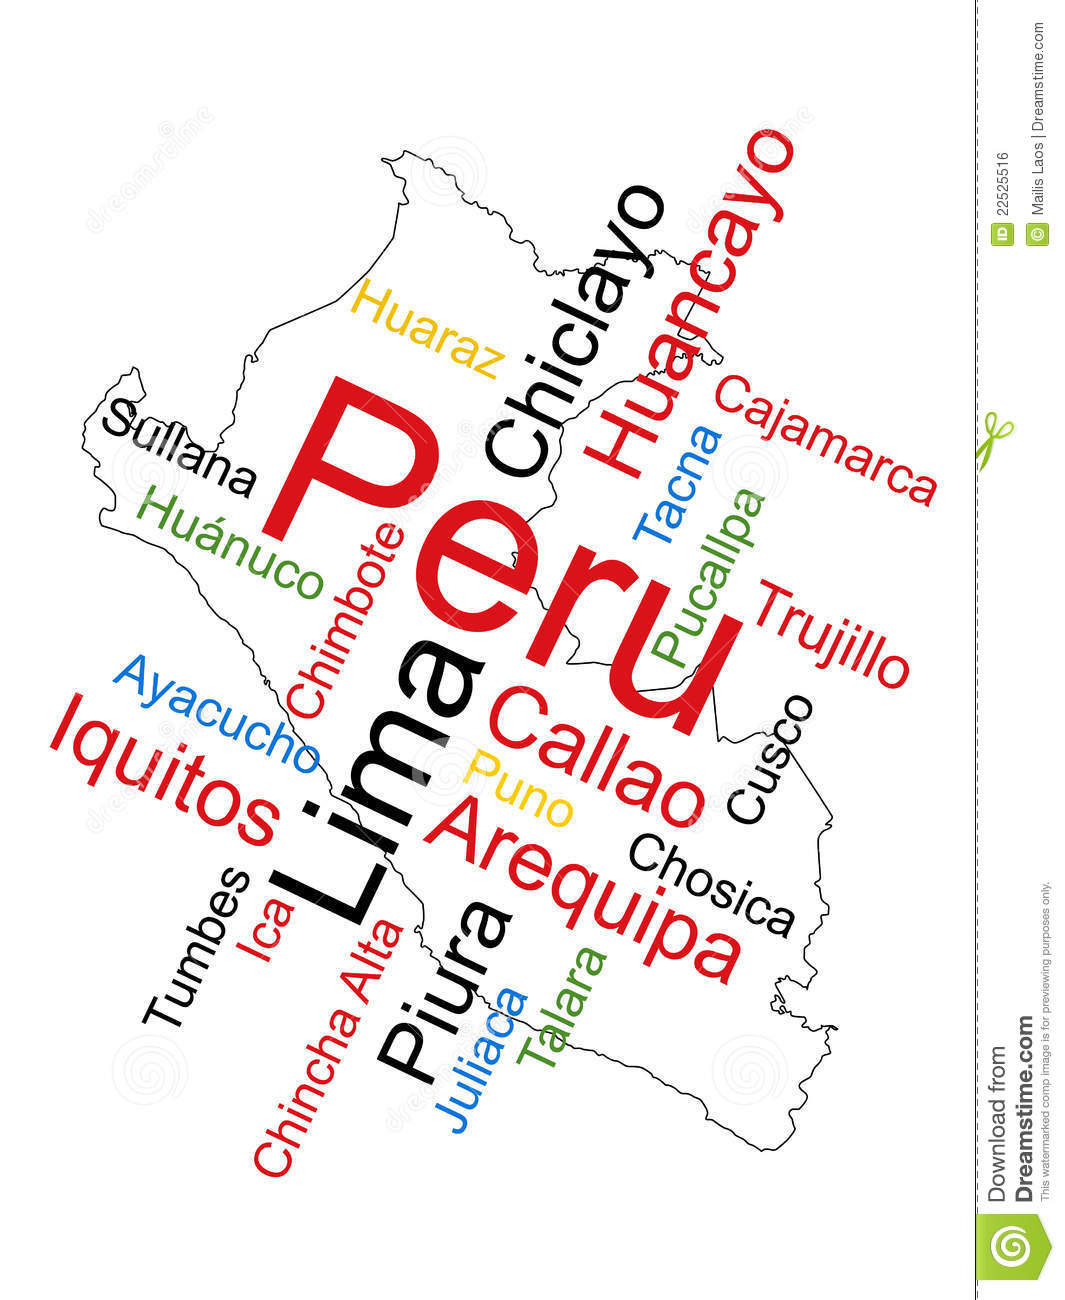 Peru Map Cities.Peru Map And Cities Stock Vector Illustration Of Keywords 22525516